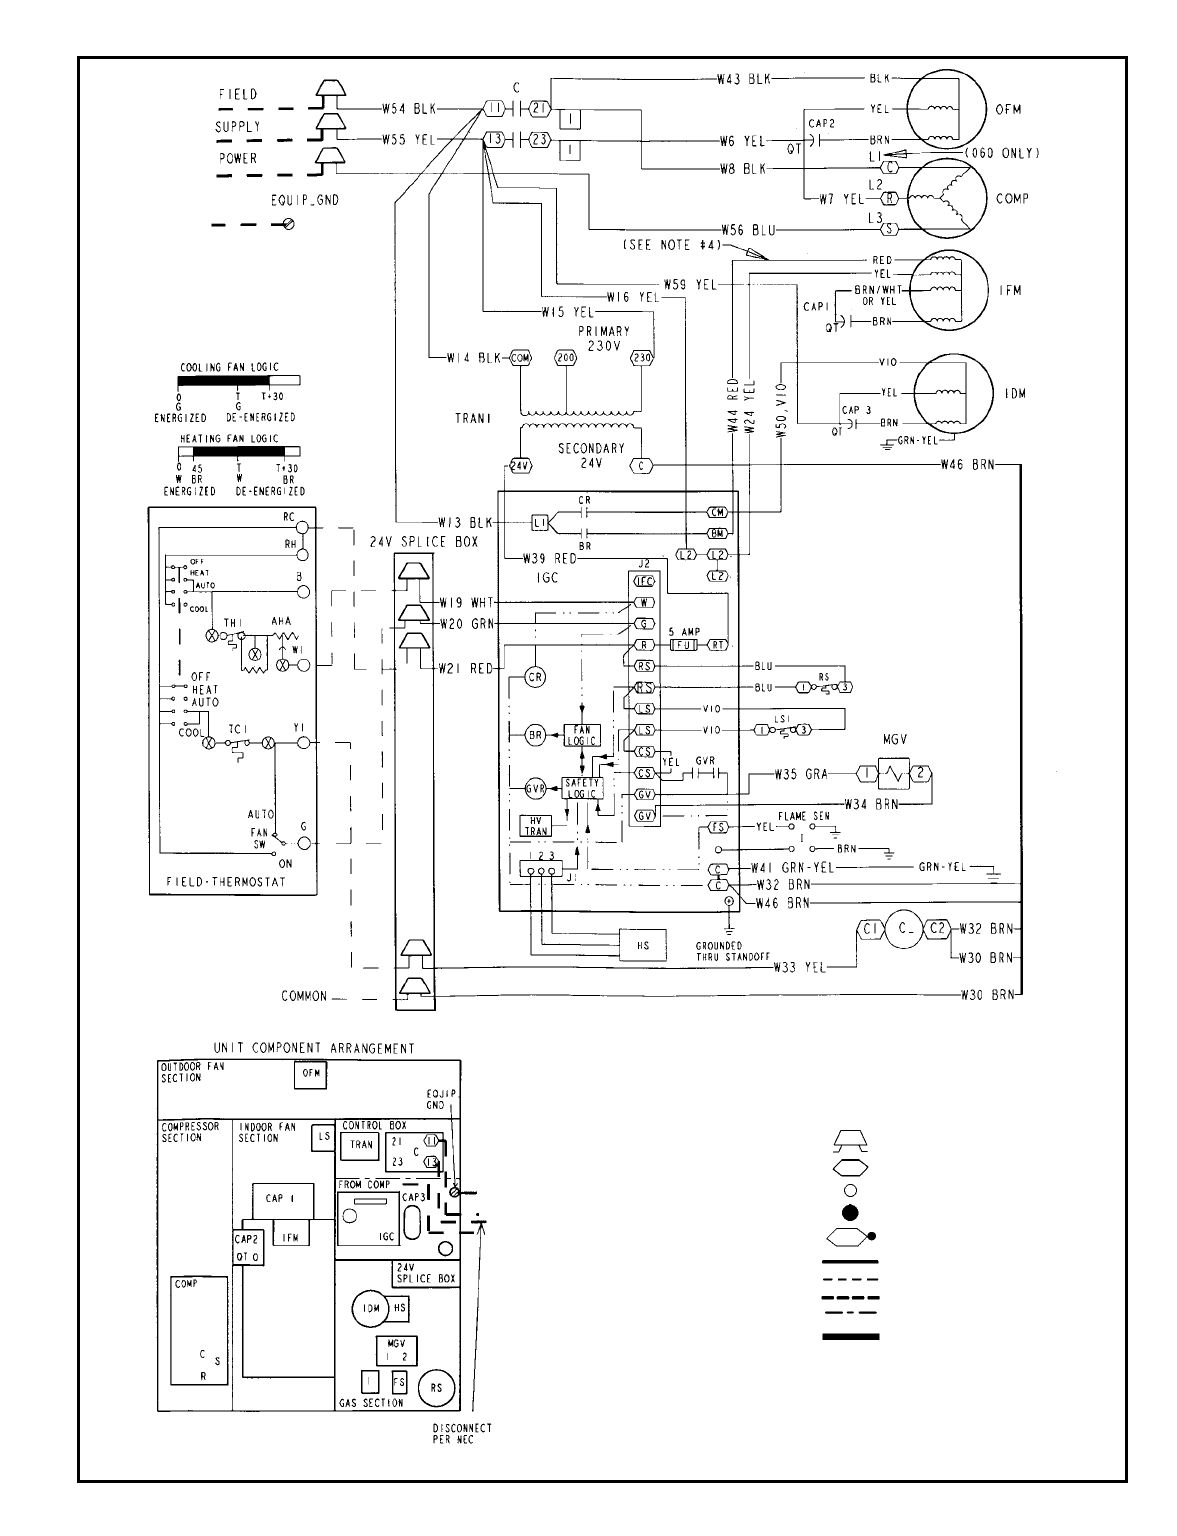 Bryant 582A TYPICAL WIRING SCHEMATIC, 582A030-060; 208/230